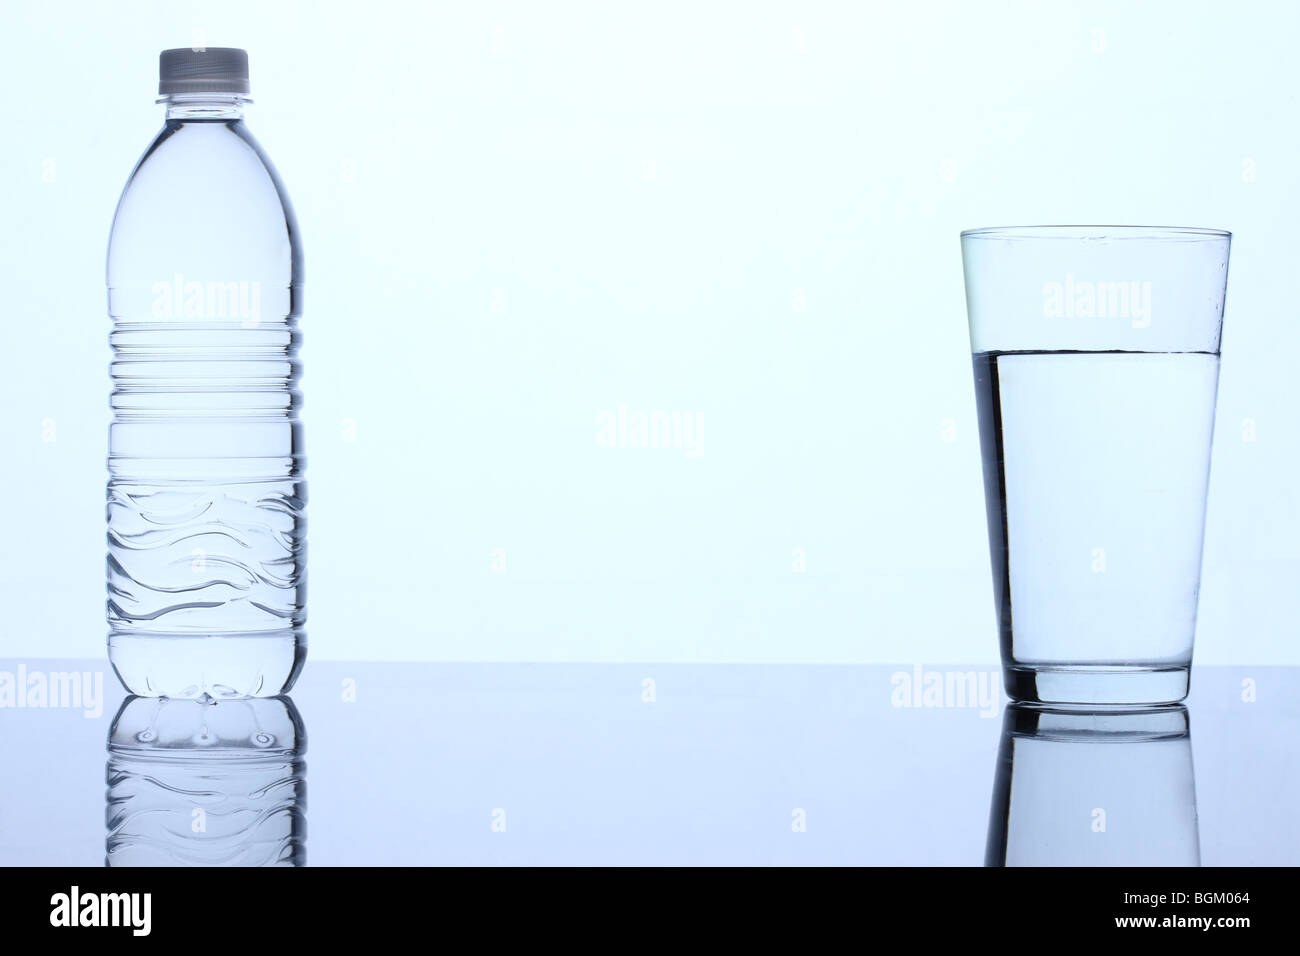 Bottle of water and glass of water - Stock Image